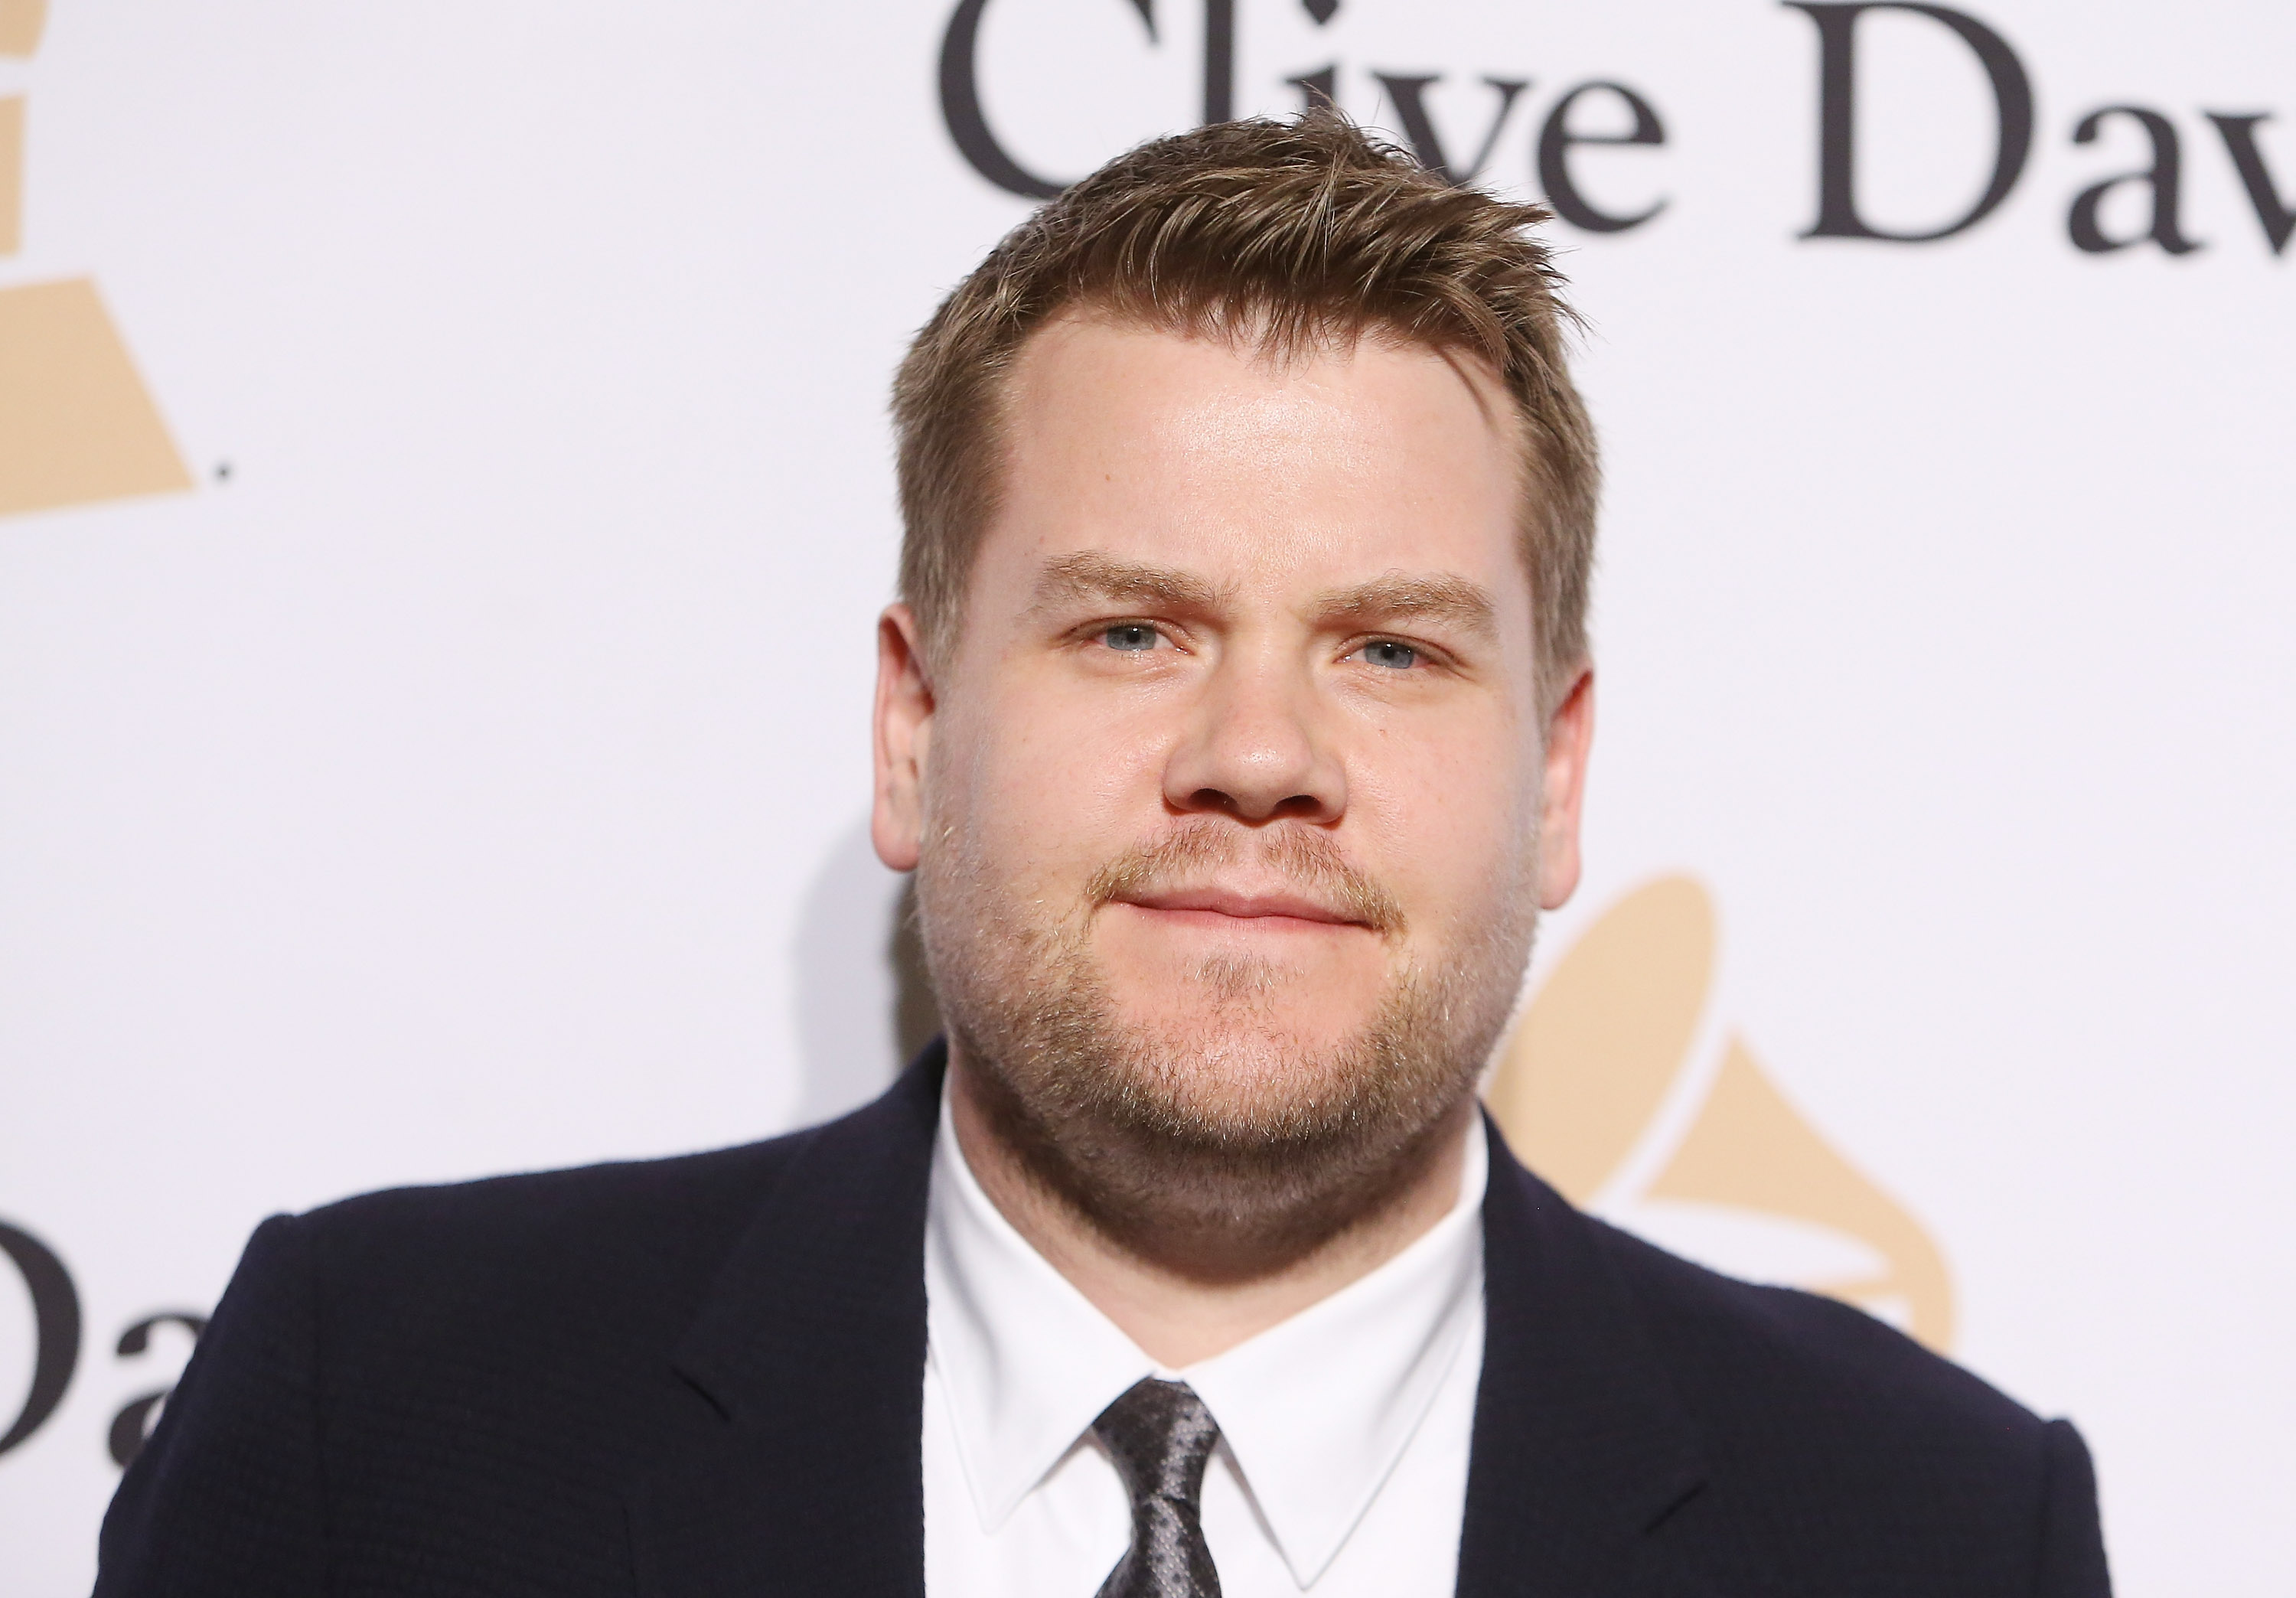 James Corden arrives at the 2016 Pre-GRAMMY Gala and Salute to Industry Icons honoring Irving Azoff held at The Beverly Hilton Hotel on February 14, 2016 in Beverly Hills, California.